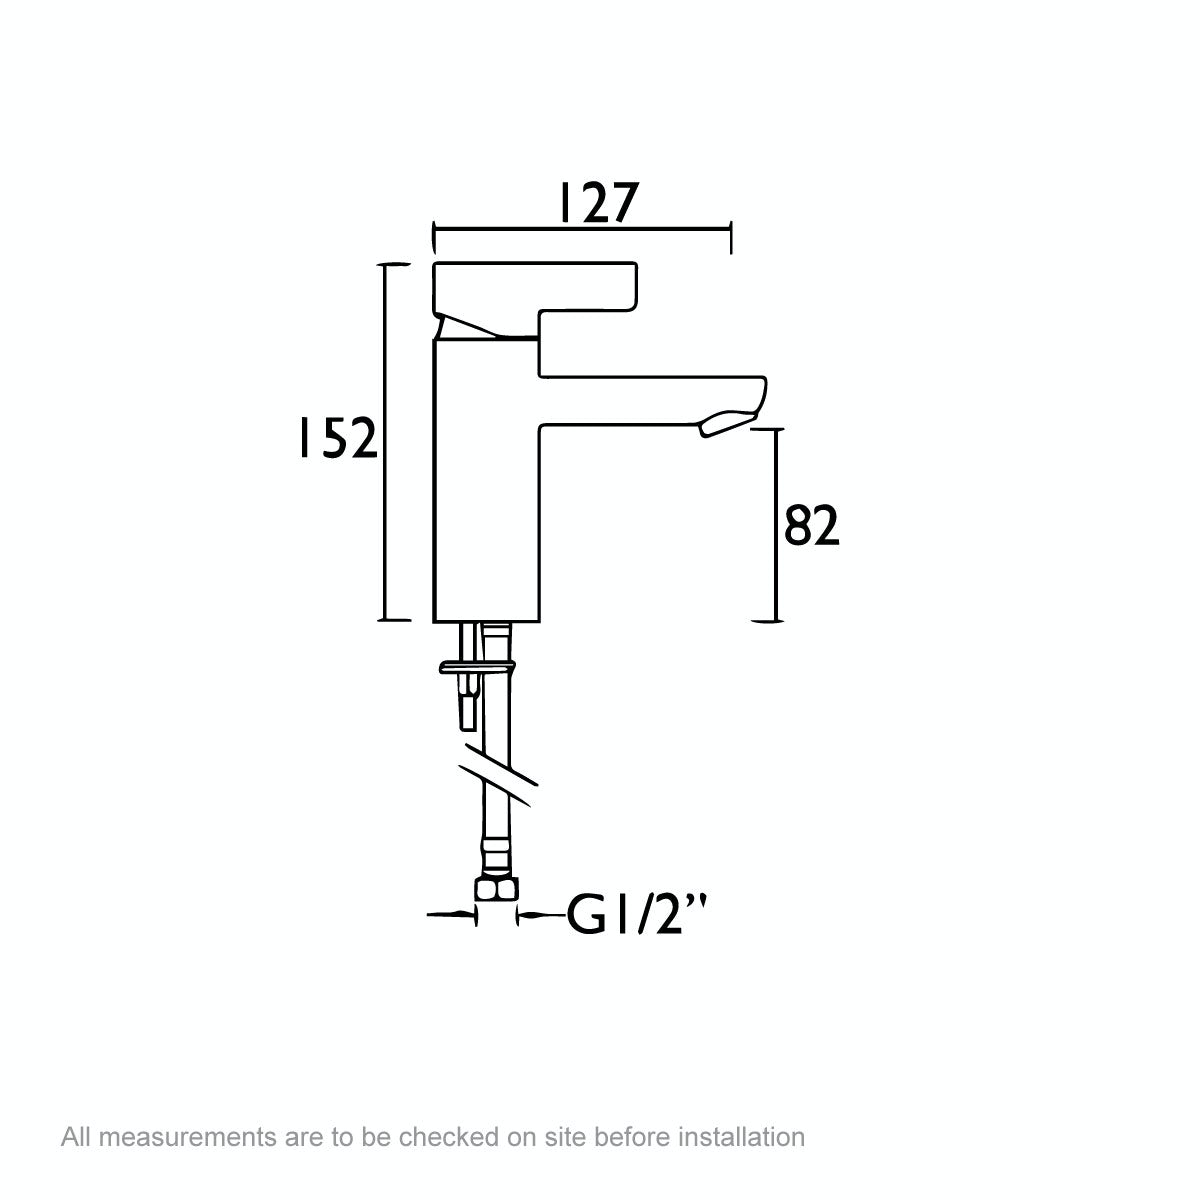 Dimensions for Bristan Clio basin mixer tap